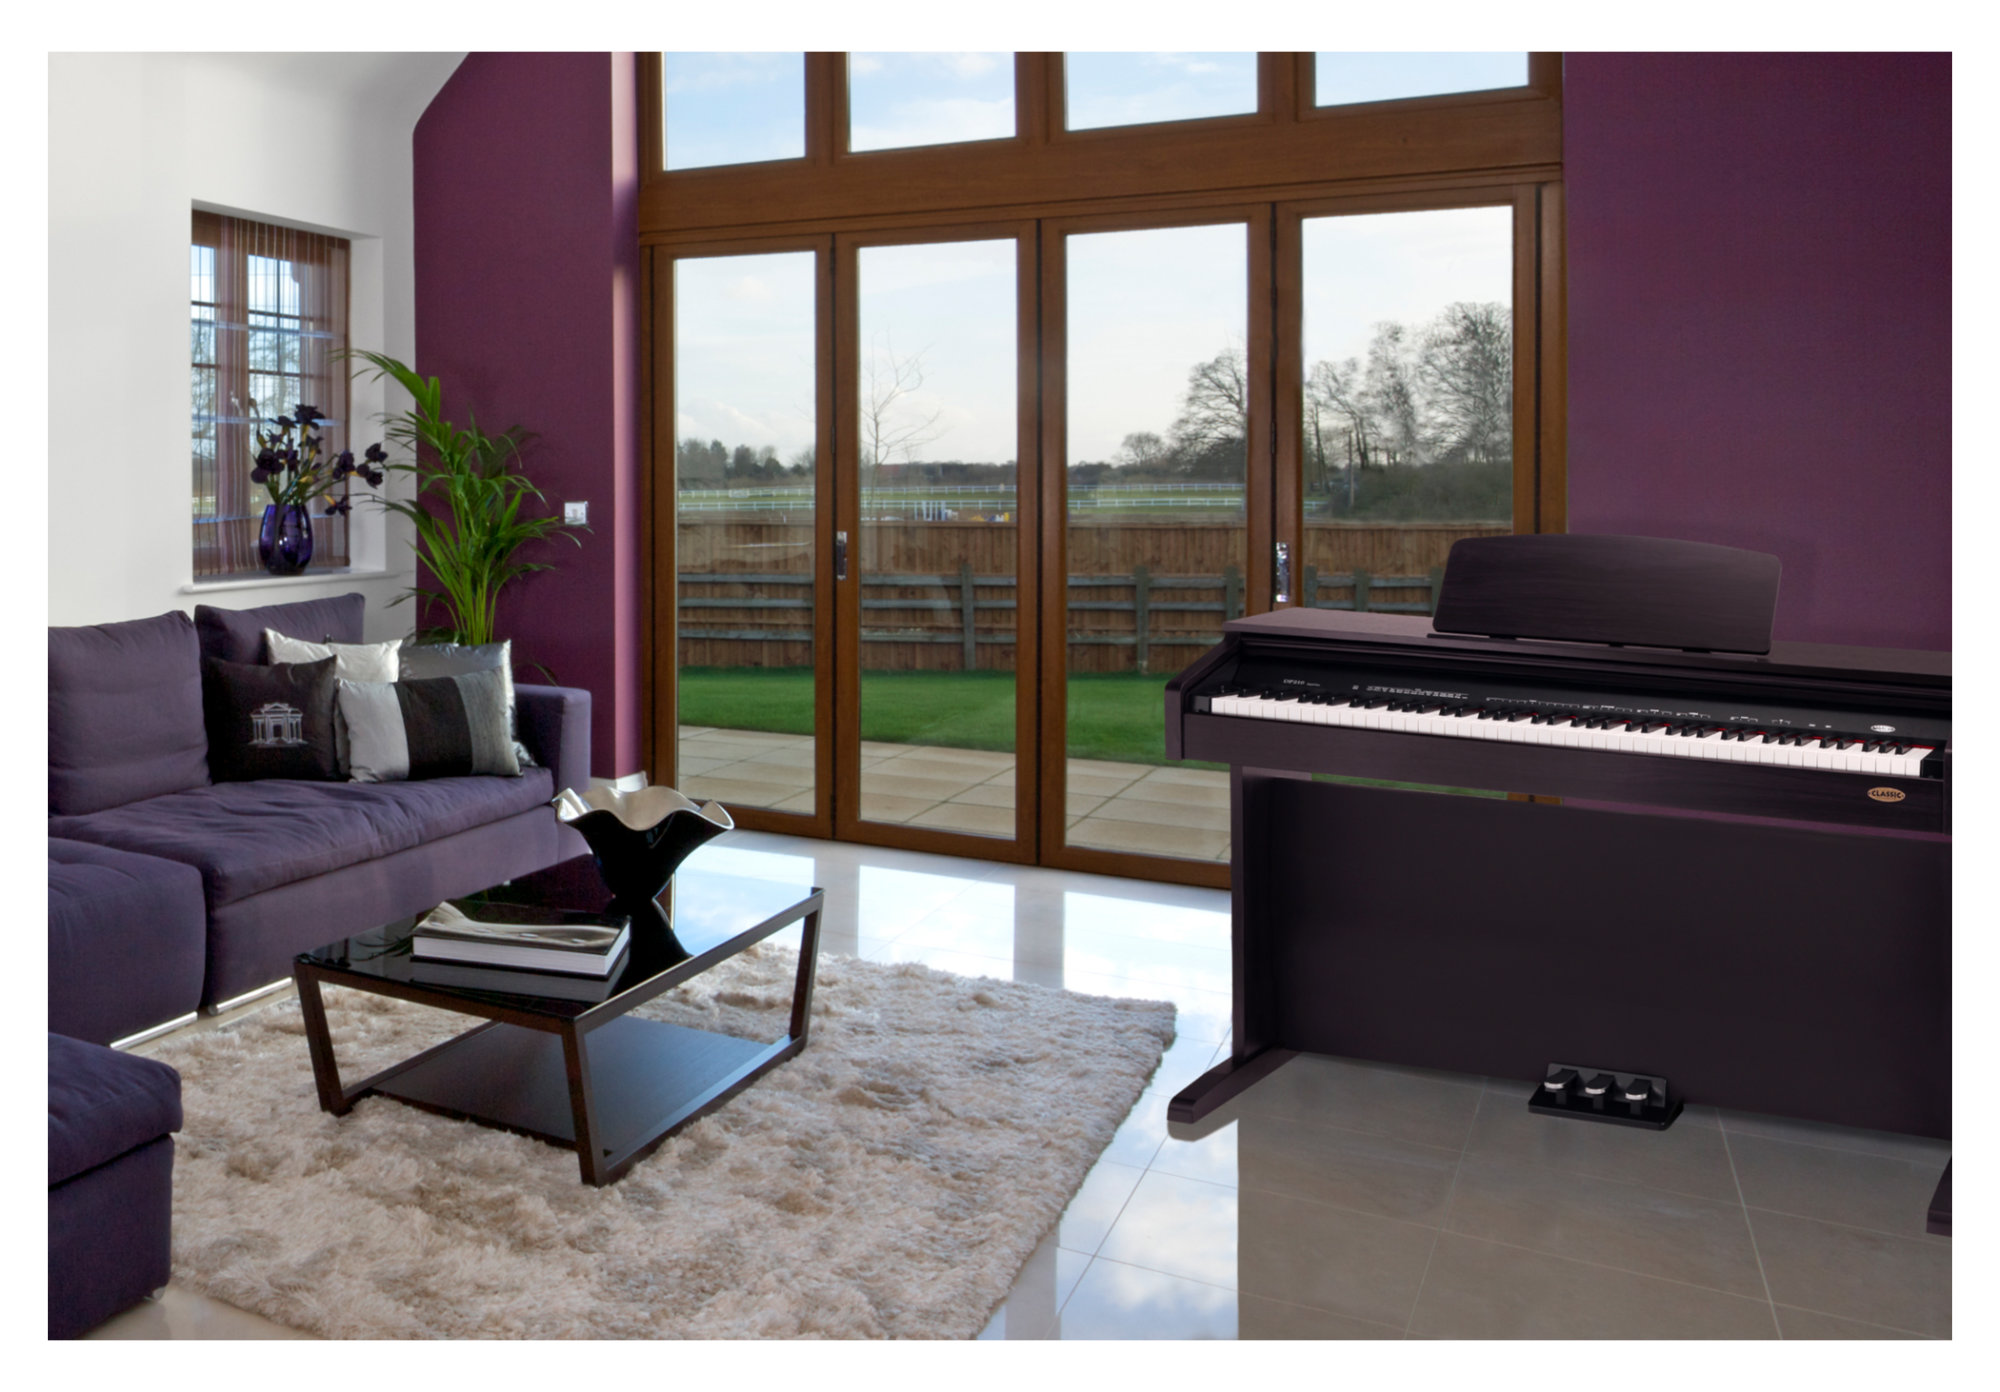 Classic cantabile dp 210 rh digital piano rosewood for Classic house piano